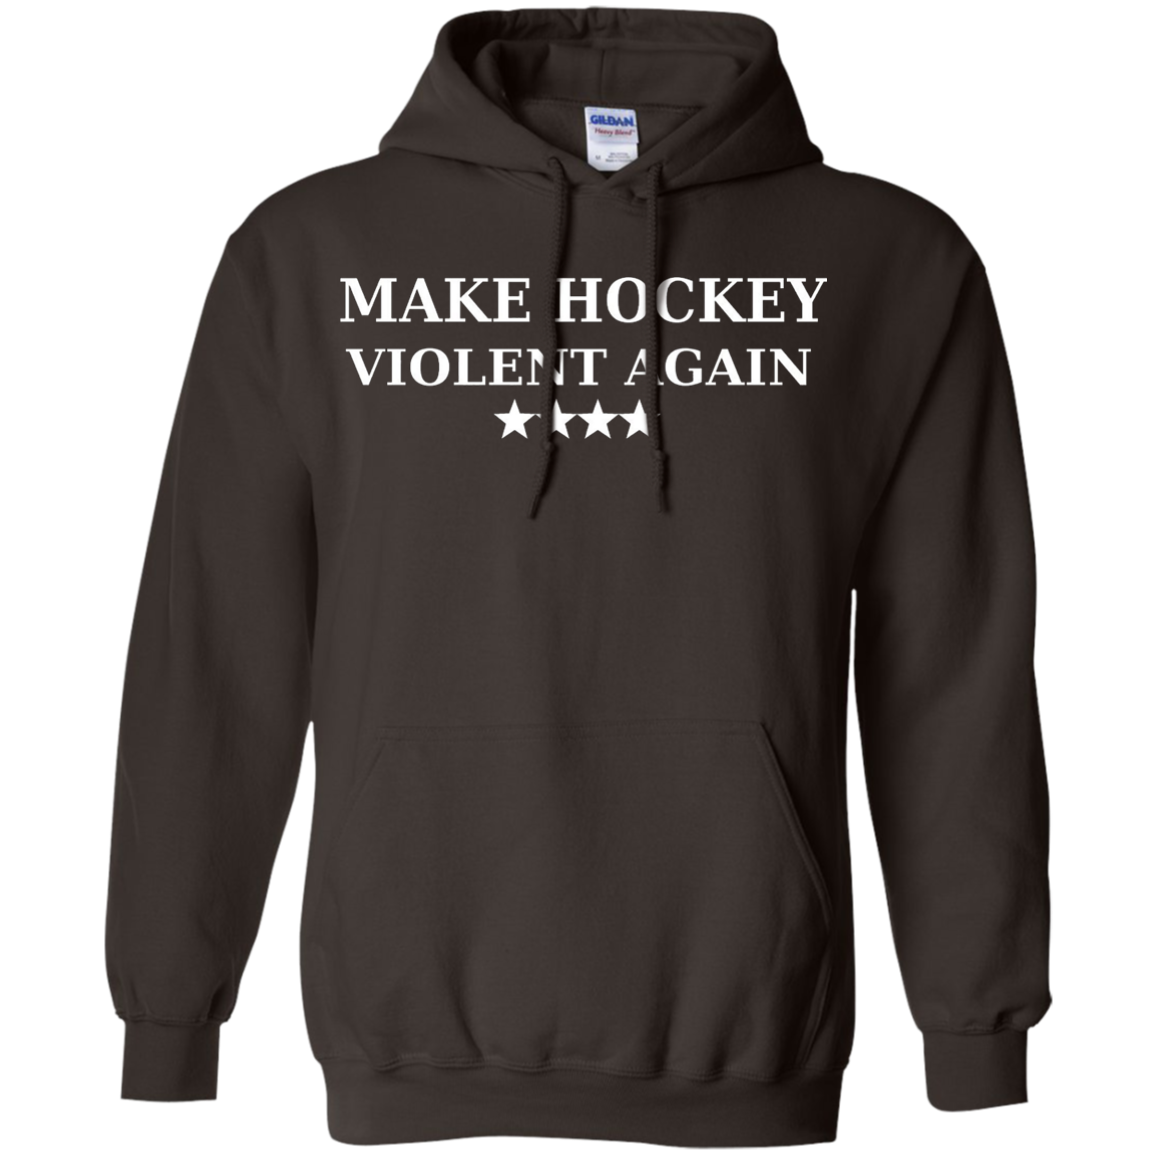 Make Hockey Violent Again Shirt Parody Trump T-shirt